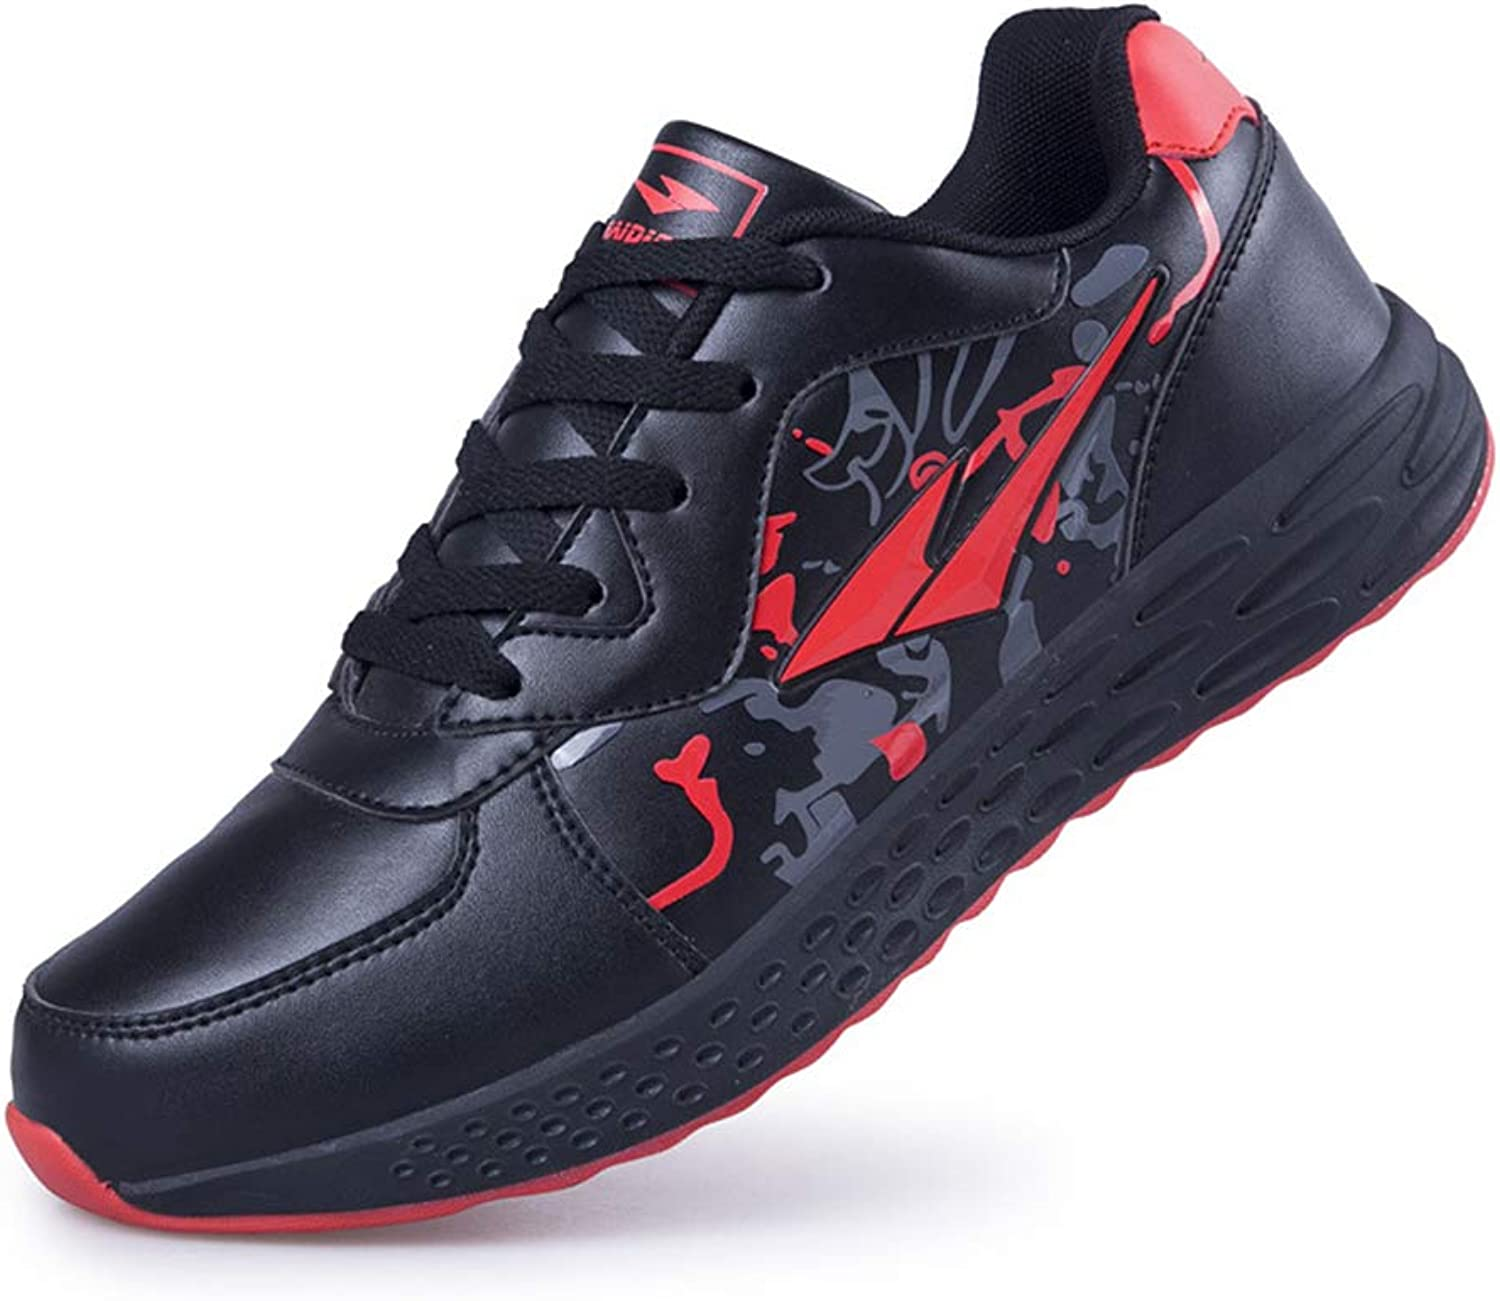 Men's shoes Microfiber Fall & Winter Fashion Low-Top Sneakers Lace Up Casual Daily Walking shoes Fitness & Cross Training shoes,B,41